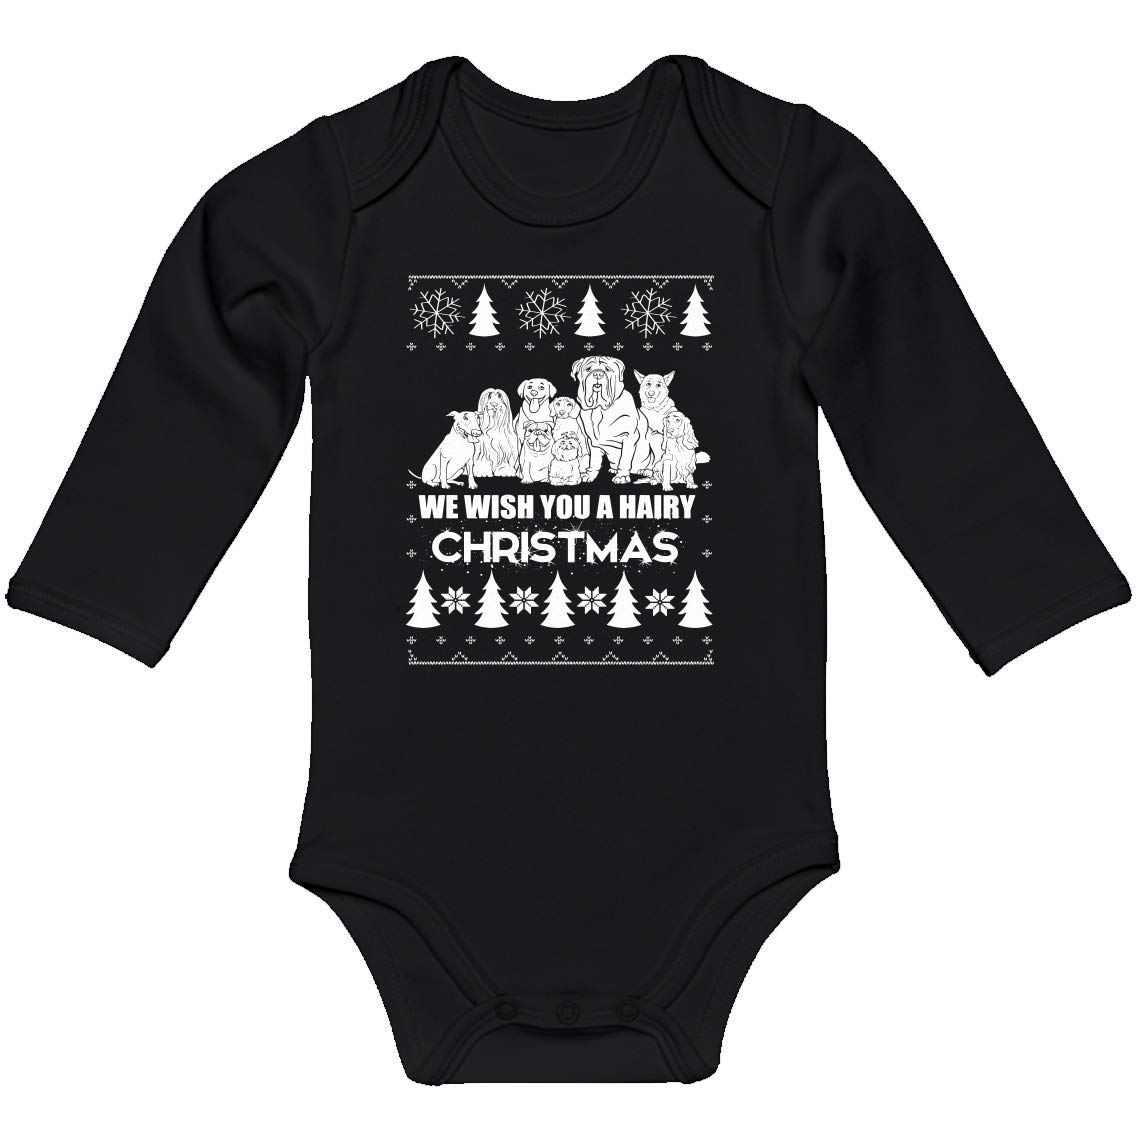 Baby Romper We Wish You a Hairy Christmas 100/% Cotton Long Sleeve Infant Bodysuit